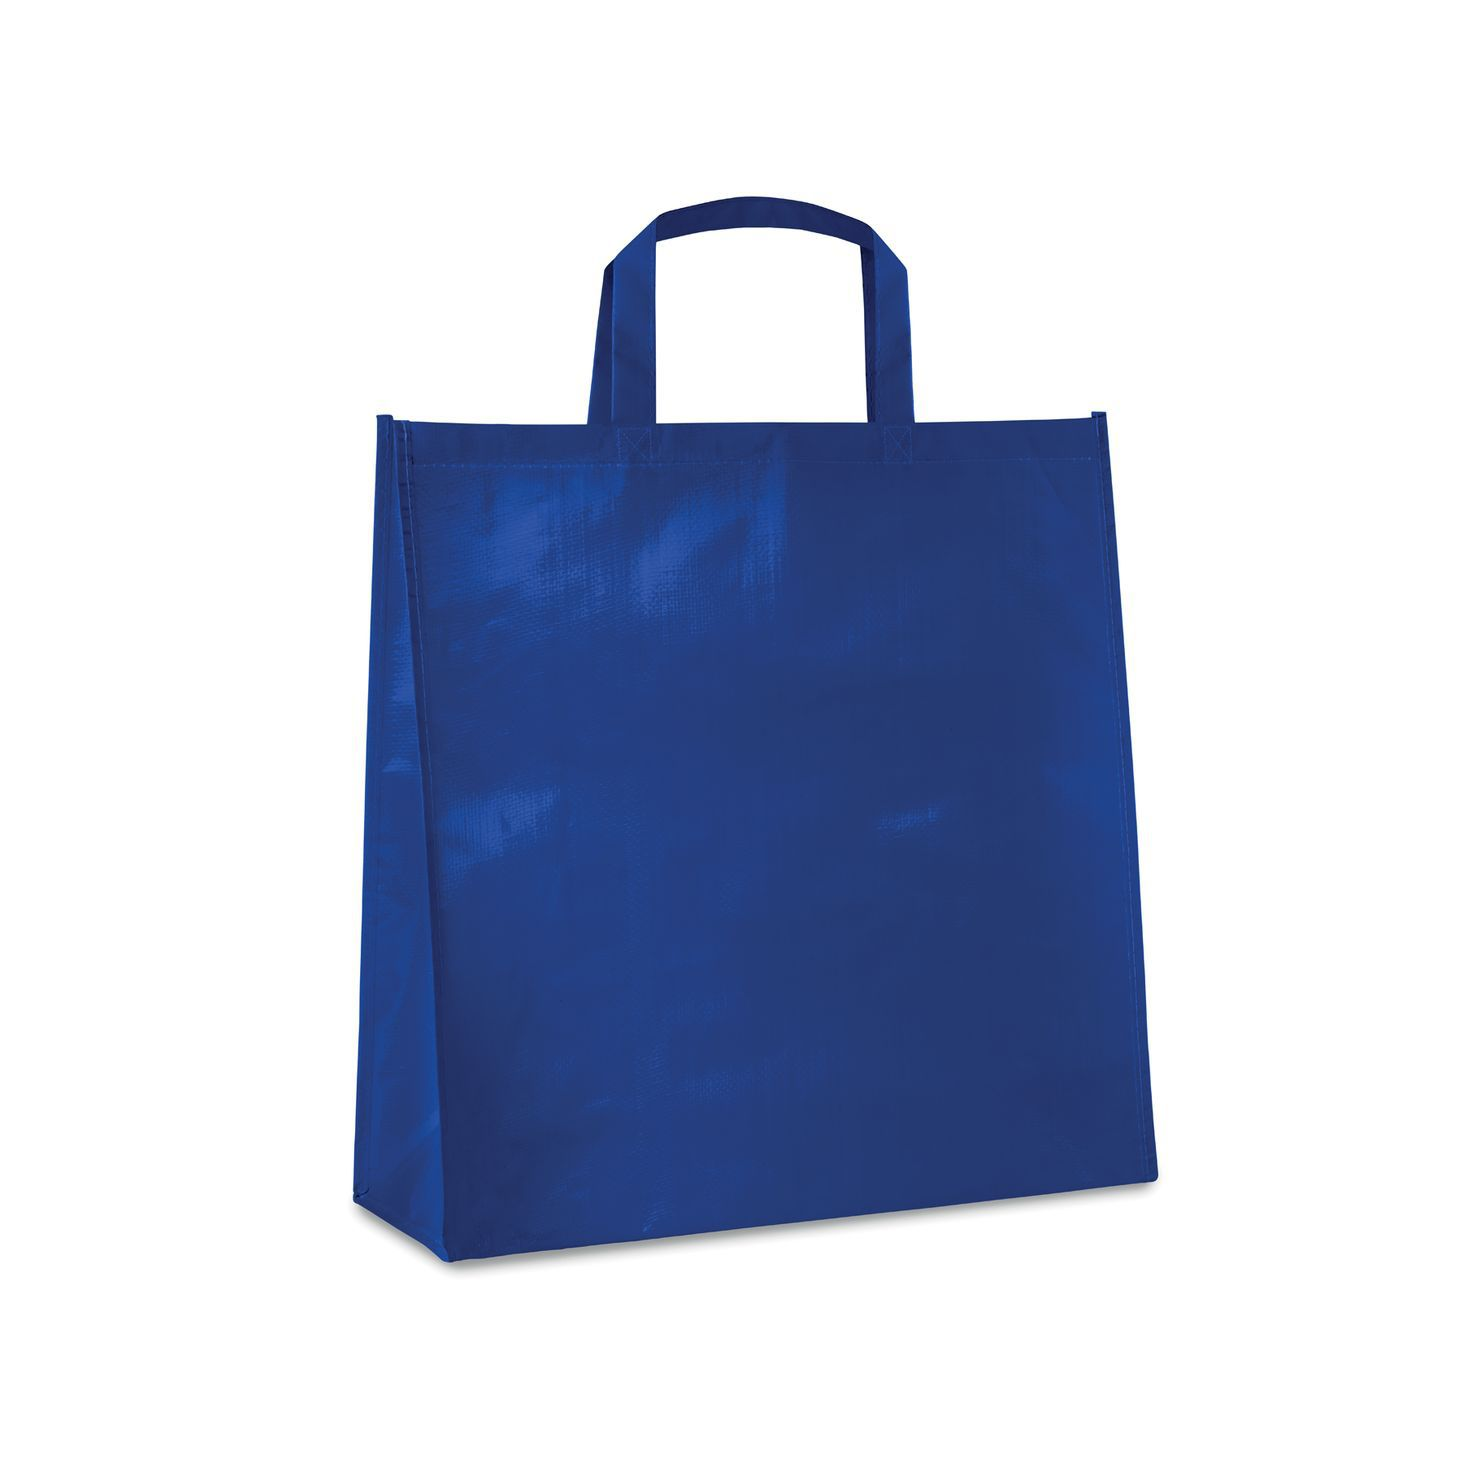 Blauwe Shopper | PP geweven | Gelamineerd | 120 grams